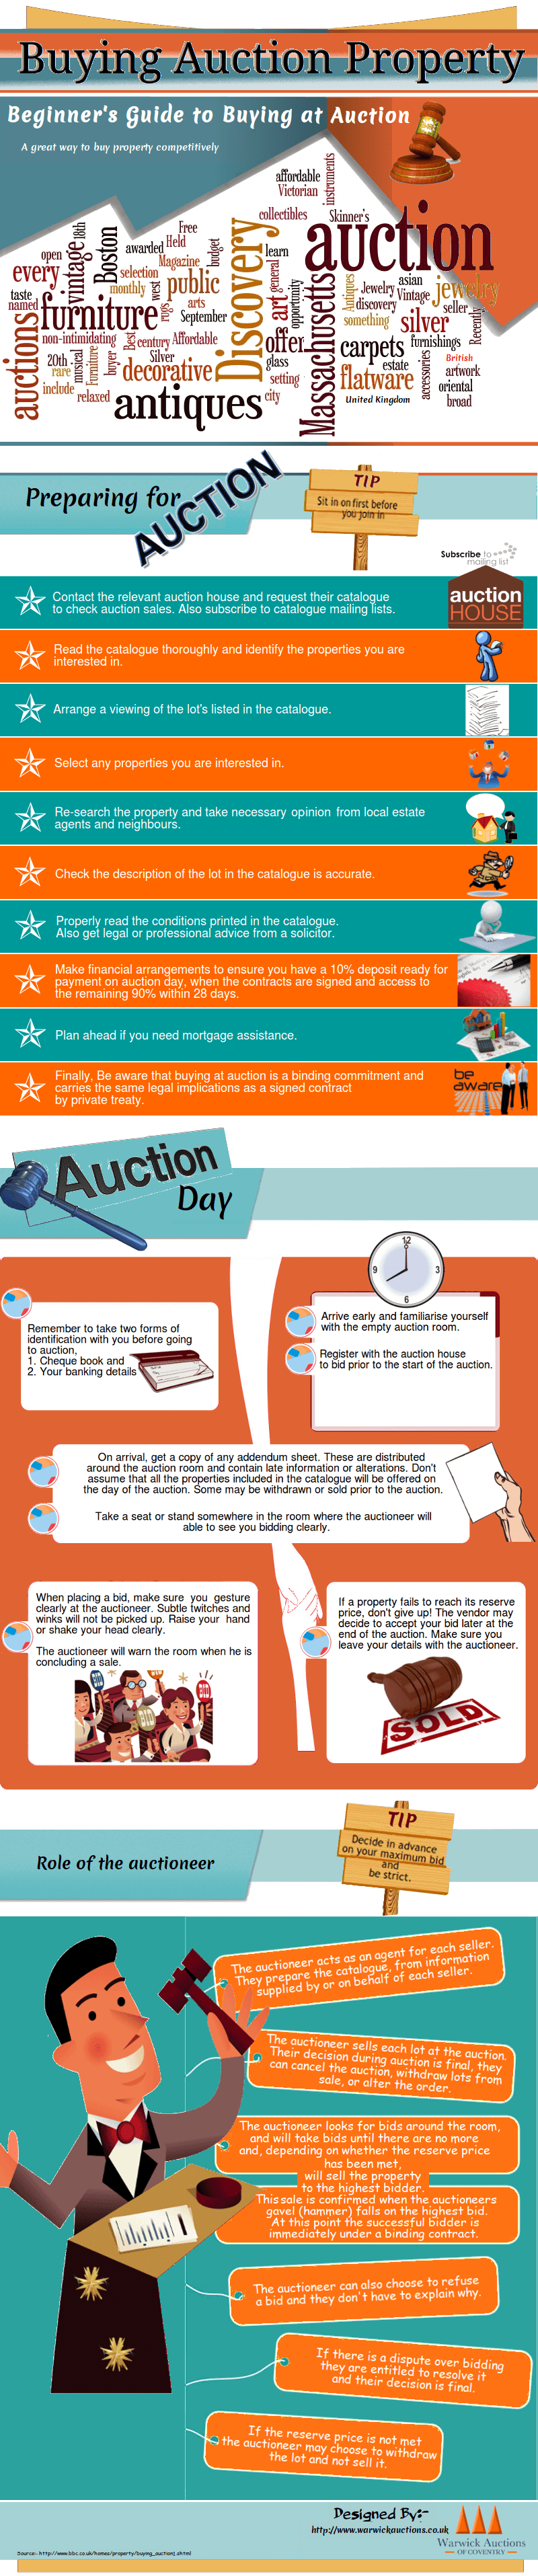 tips-to-buy-a-property-at-auction--beginners-guide_521375358efd4